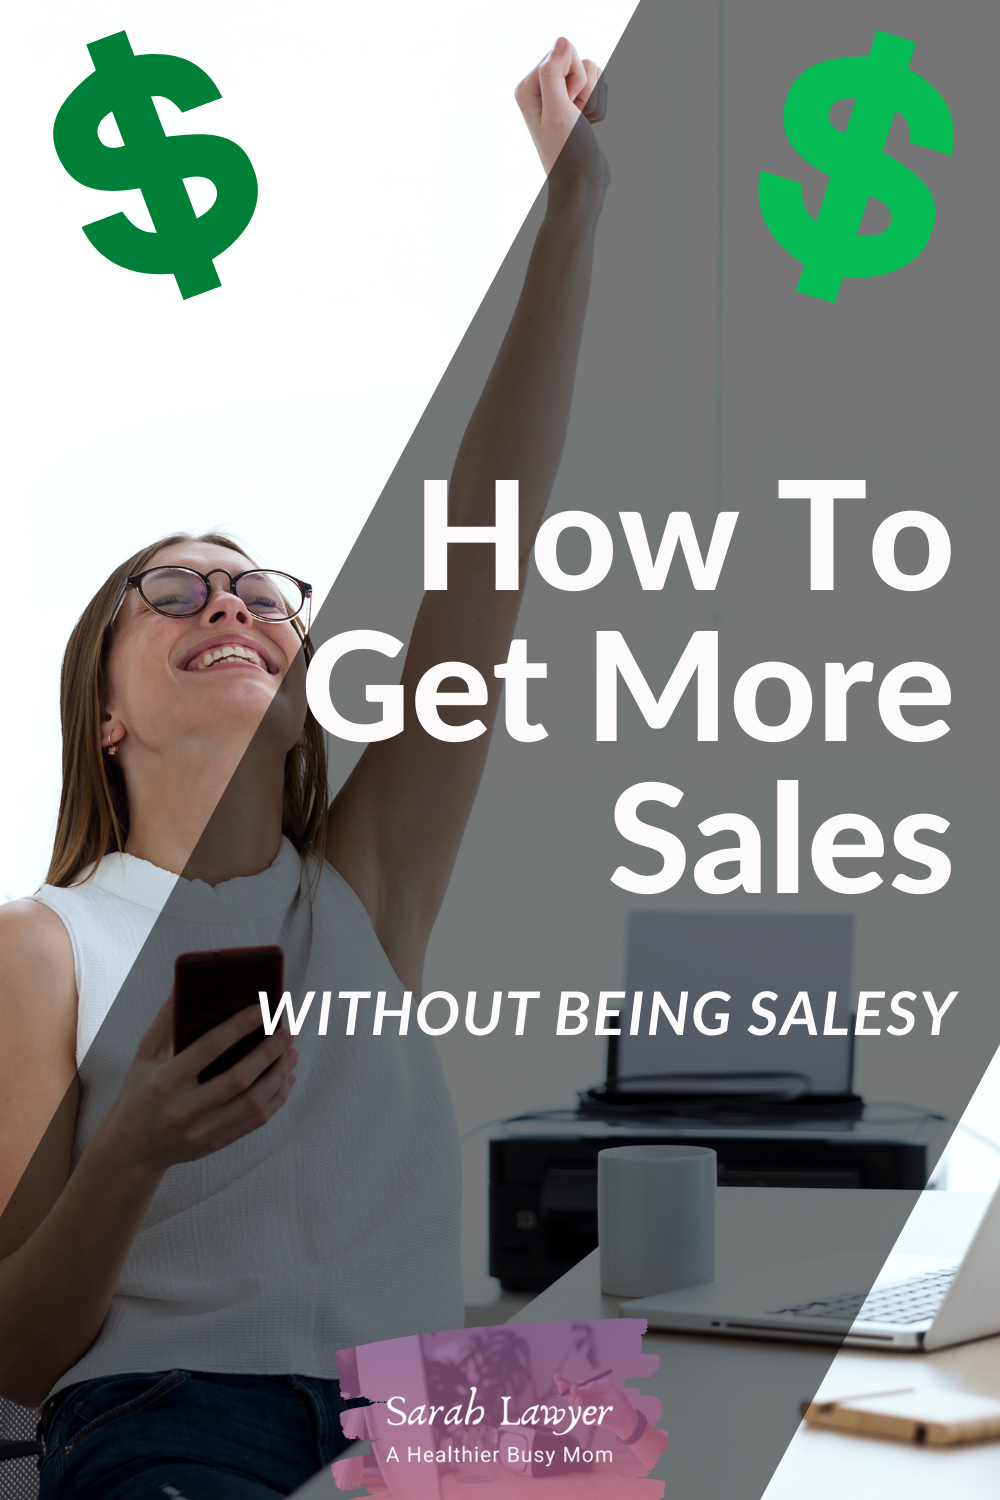 Learn techniques of closing a sale to go from zero sales to a lot sales with these simple and easy to follow tips.